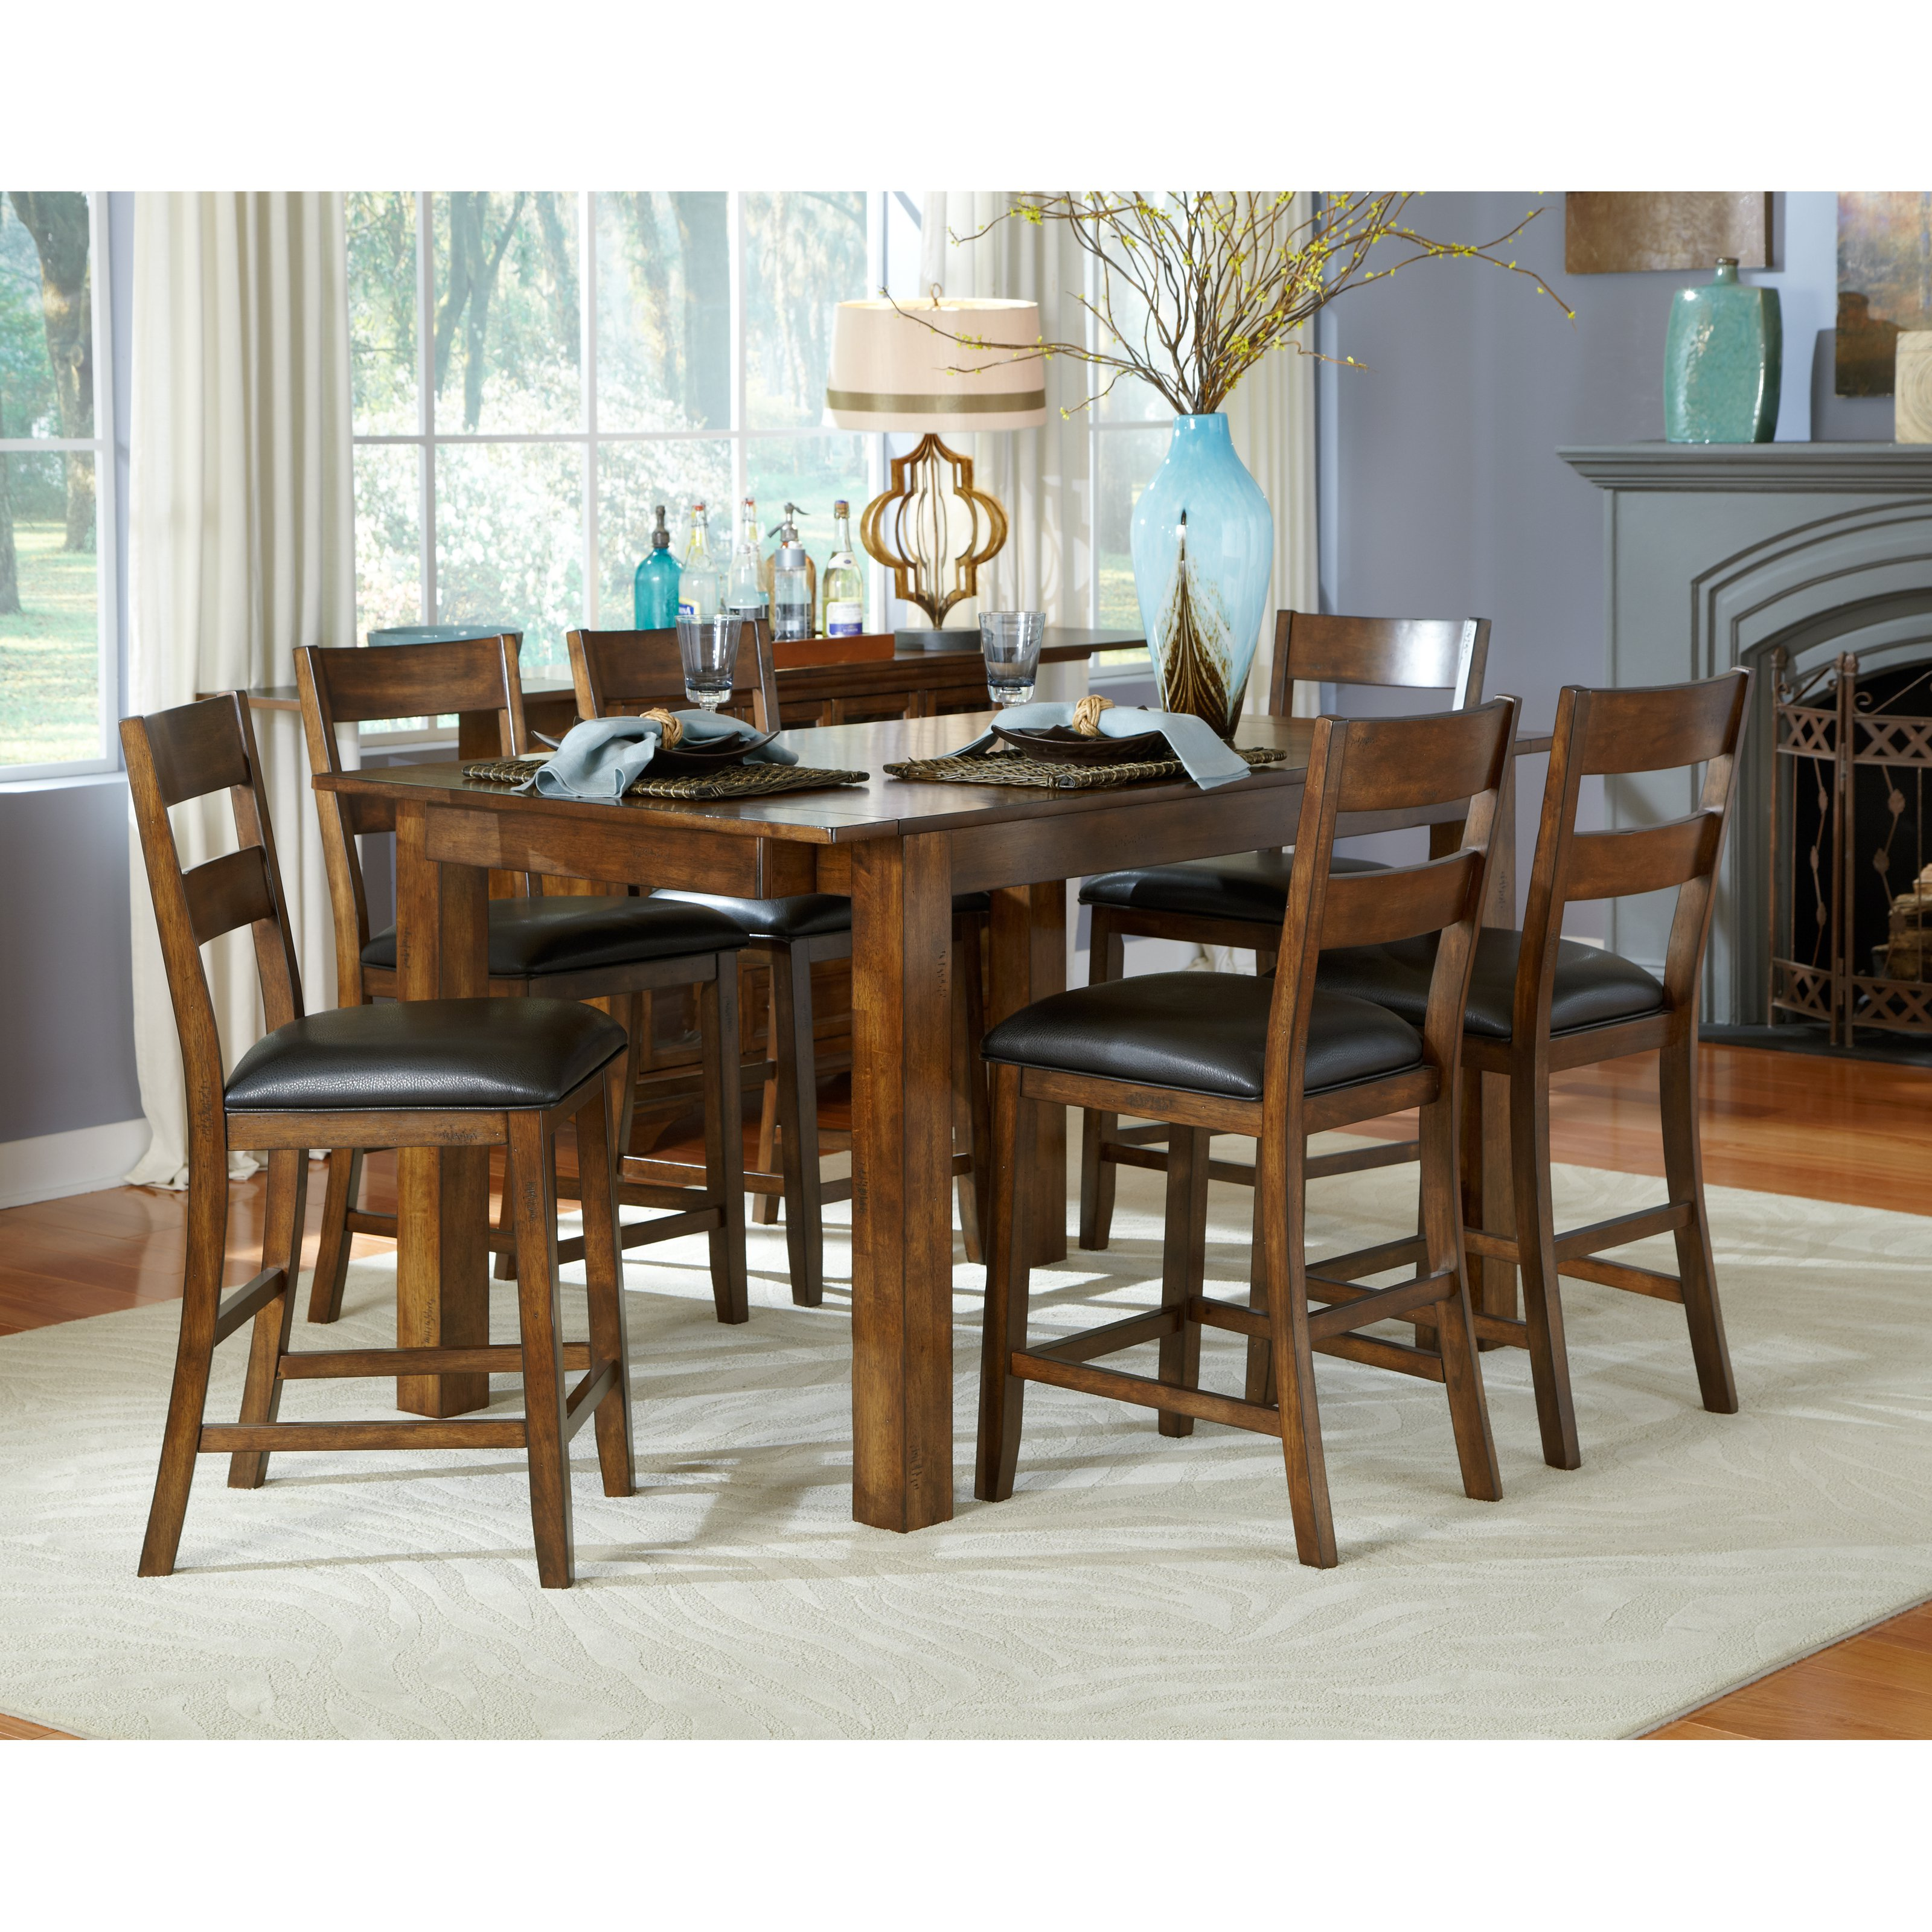 counter high dining table cindy crawford home highland park ebony aamerica mariposa gathering counter height dining table rustic whiskey